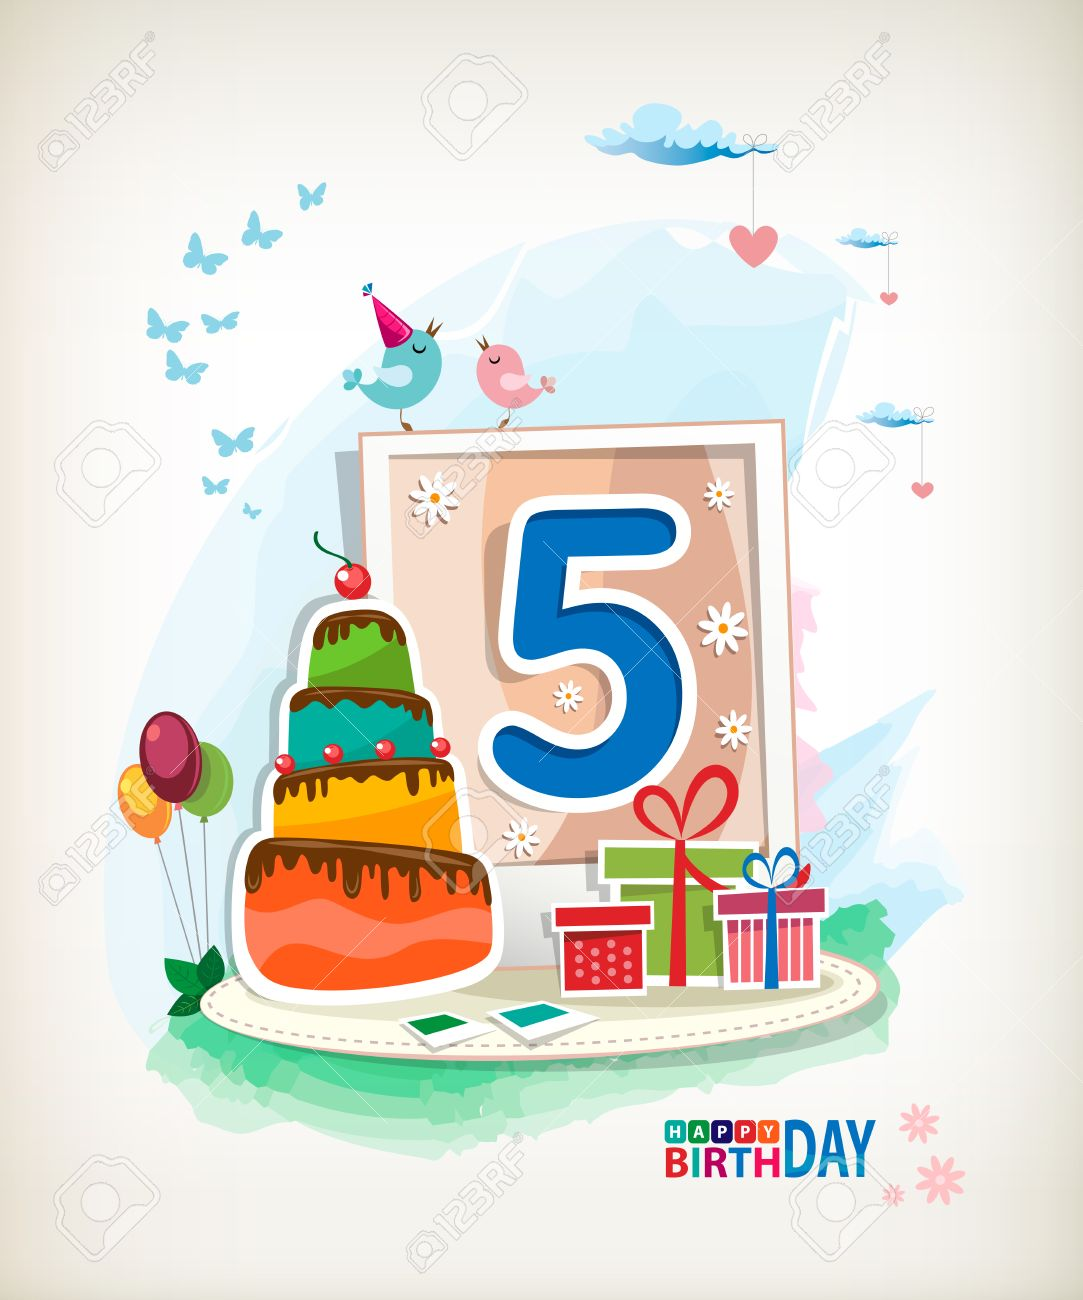 Magnificent Fifth Birthday Card Birthday Cake And Photos Royalty Free Funny Birthday Cards Online Alyptdamsfinfo